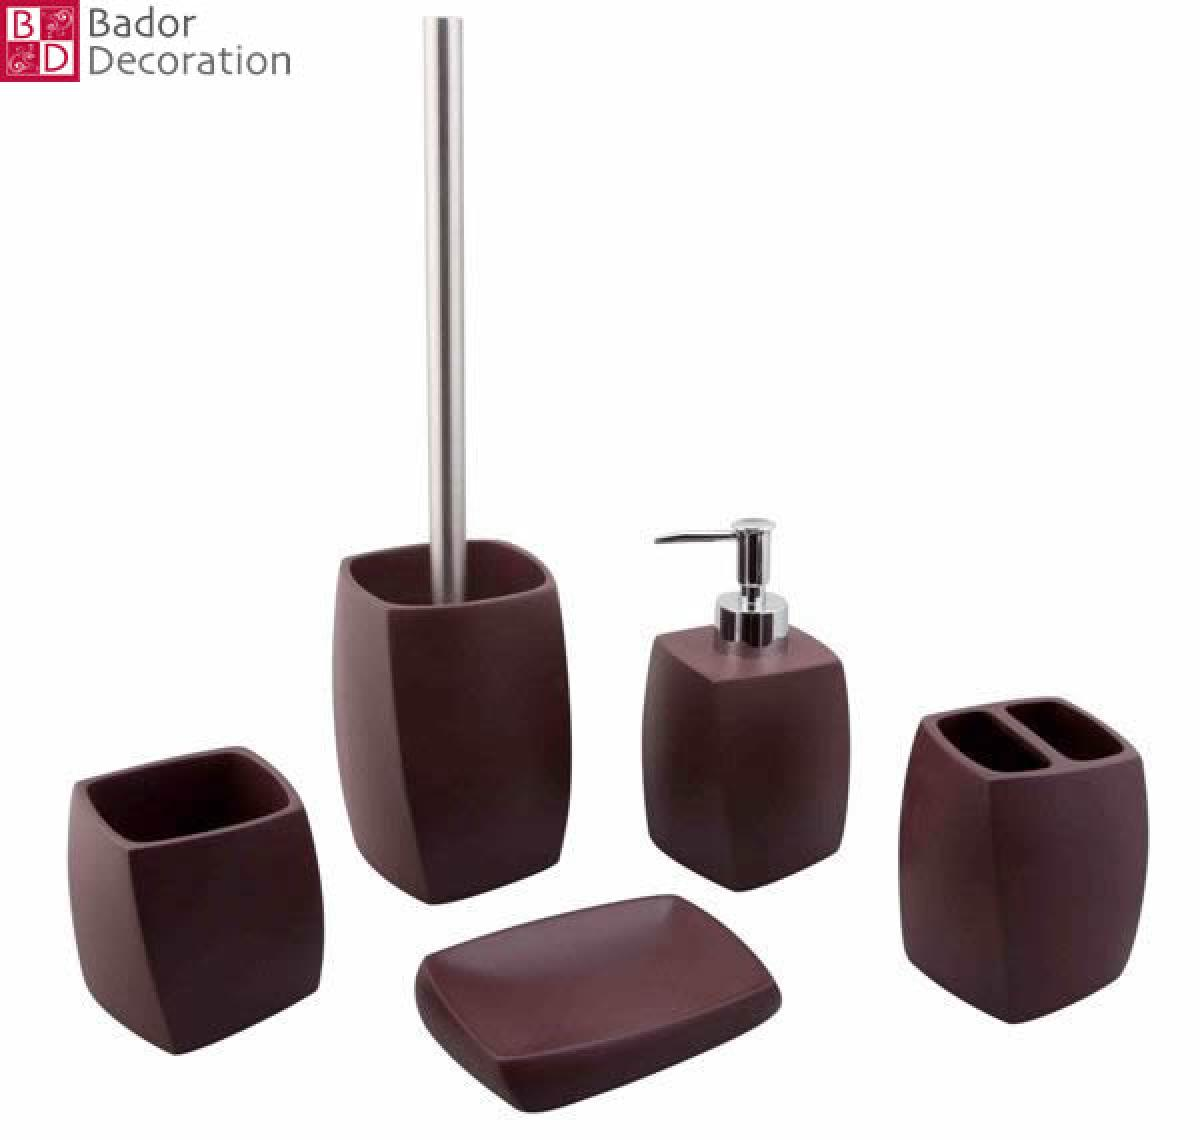 Bad Set Wc Bador Decoration 5 Tlg Bad Set Quothelios Quot Braun